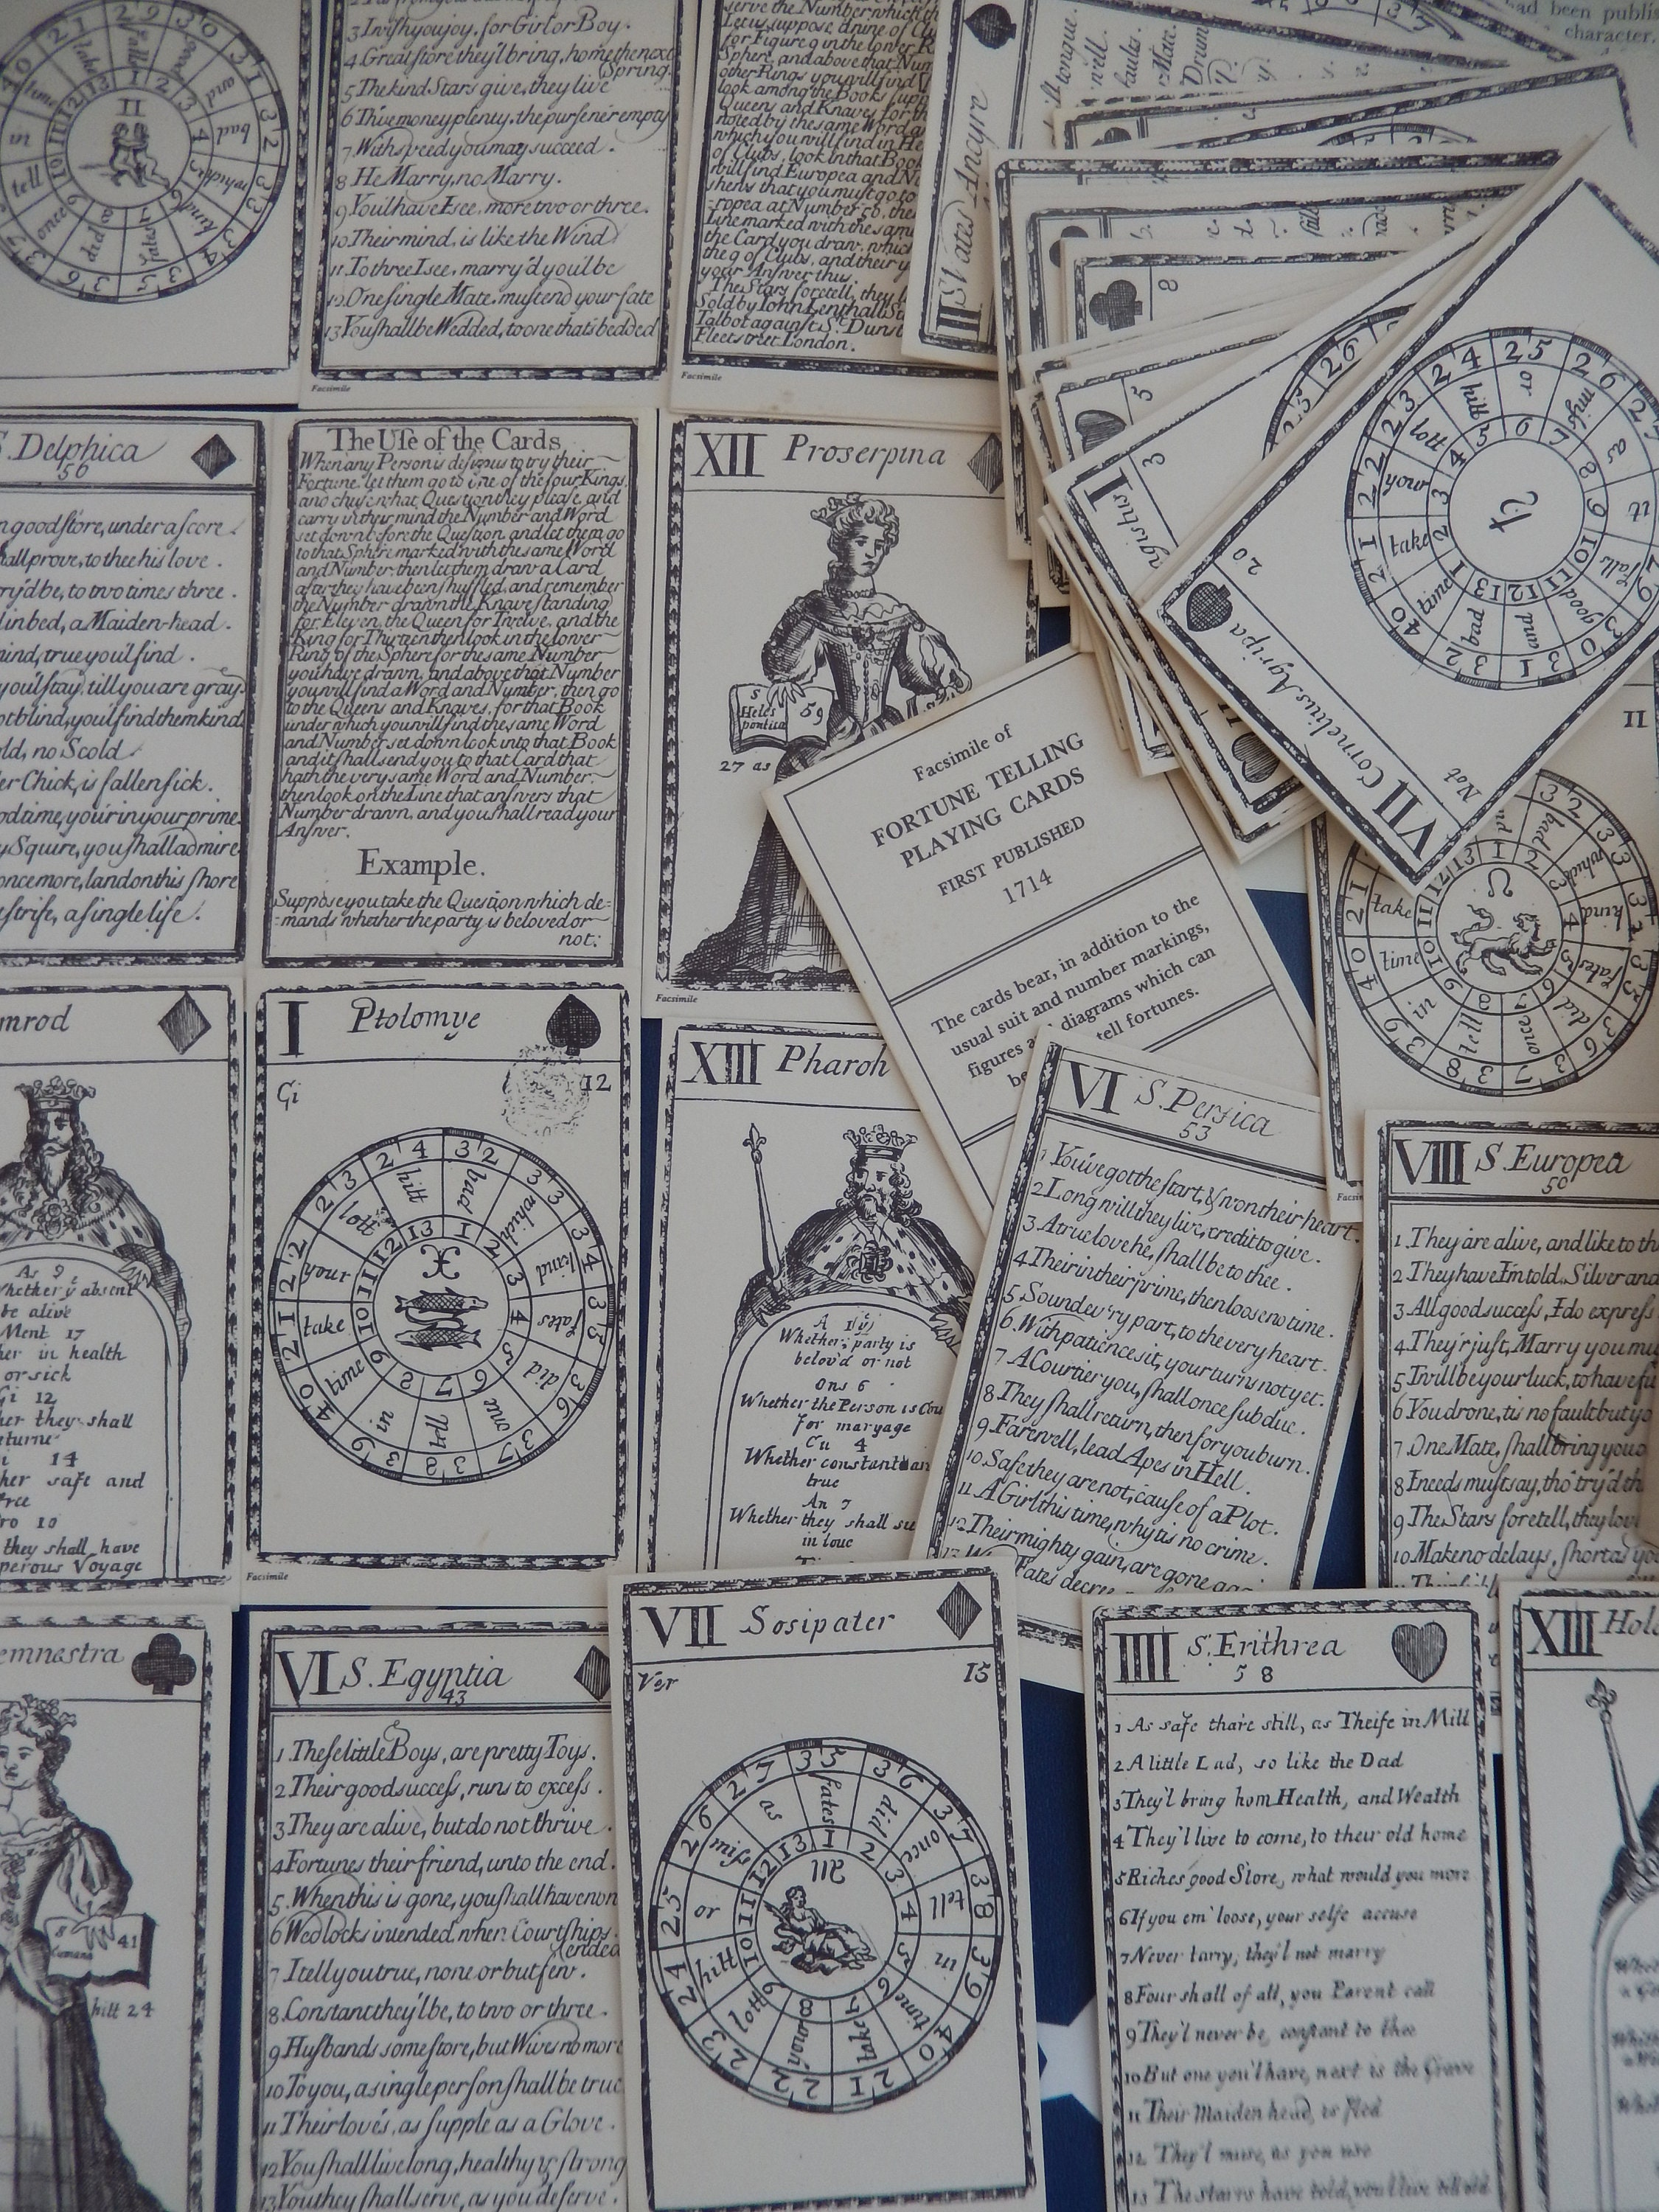 OOP Rare Fortune Telling Deck, Divination Astrology, Facsimilie Tarot  Cards, Ancient Fortune Edition Deck, Astrology, Fate Fortune Cards,